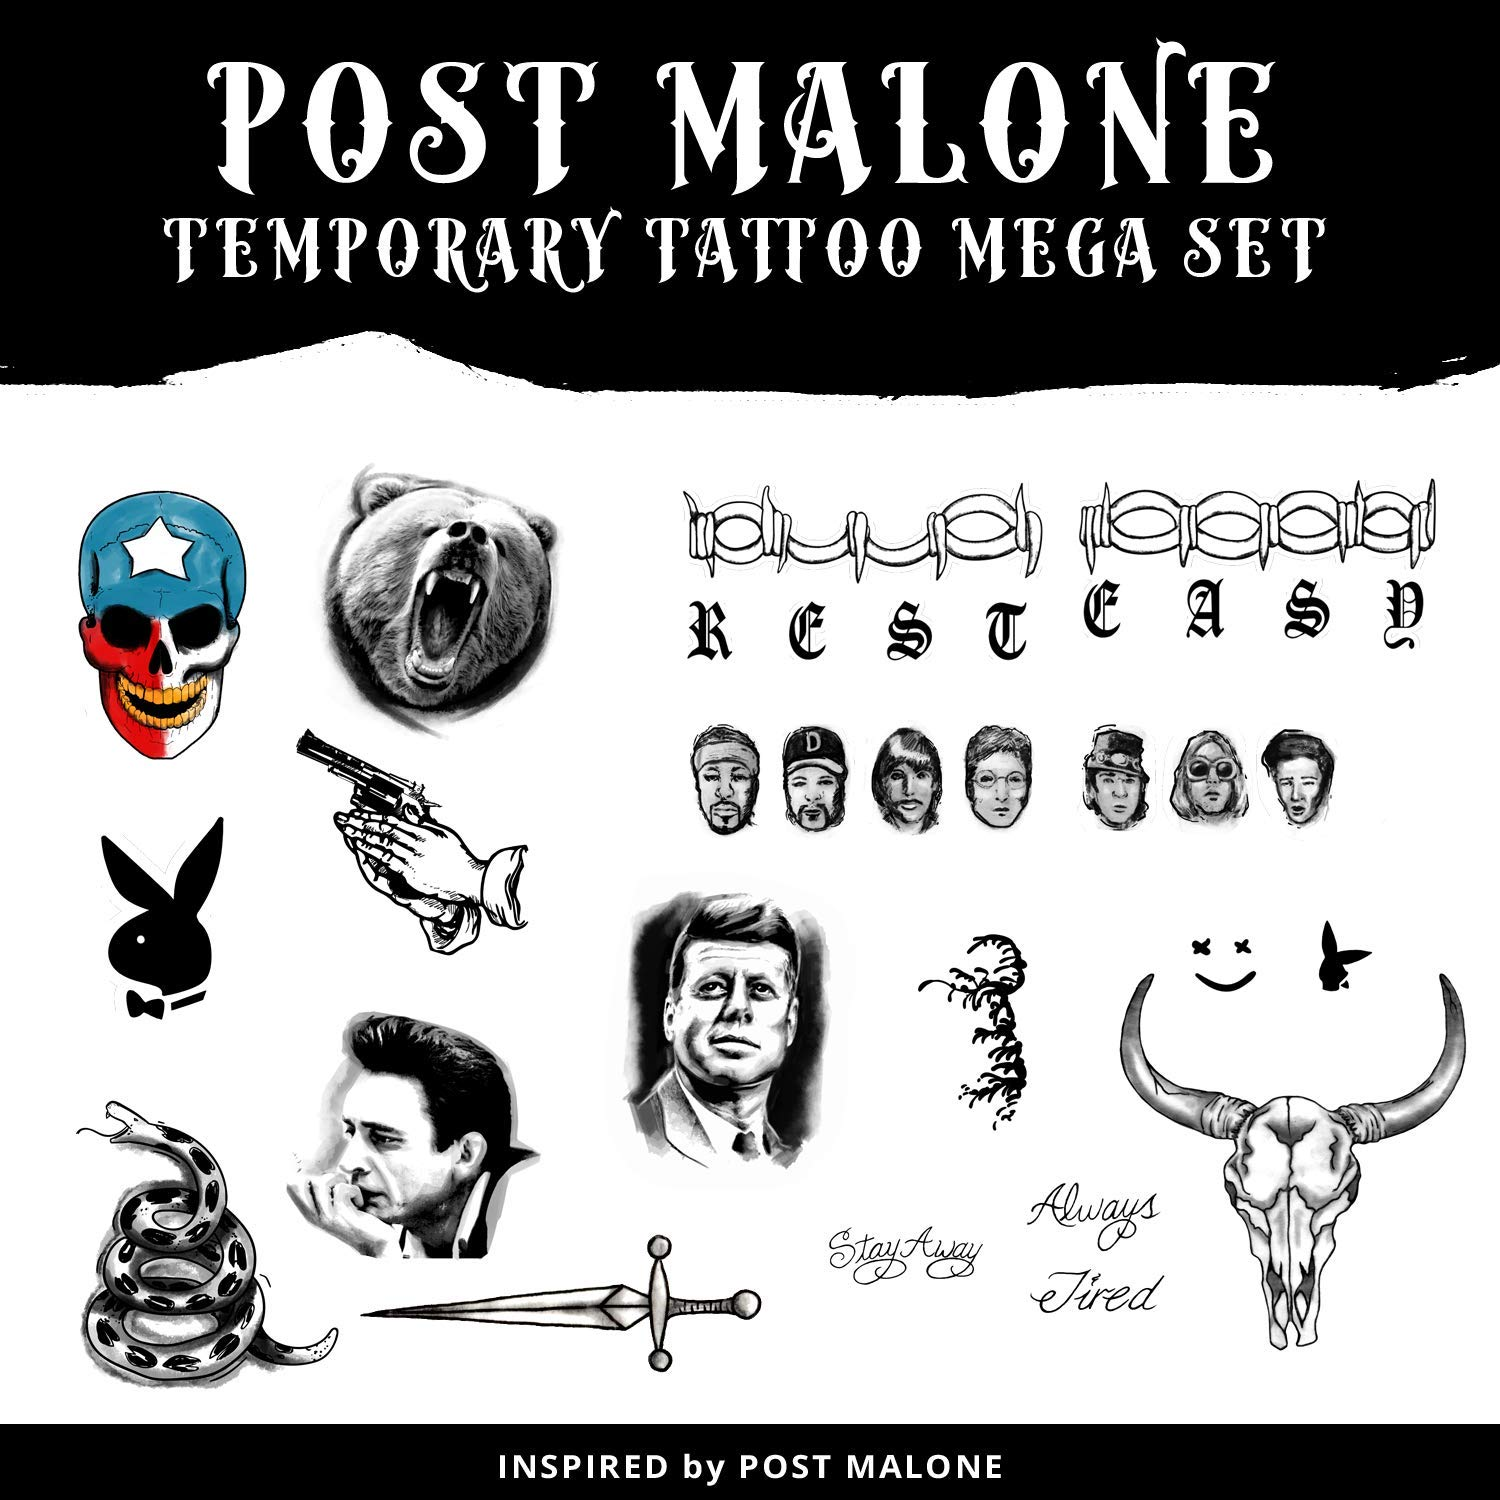 Post Malone Super Mega Deluxe Pack | Post Malone Tattoo Set | Temporary Tattoos | Halloween Costume | Skin Safe | 48 Tattoos Total by Ink Daze